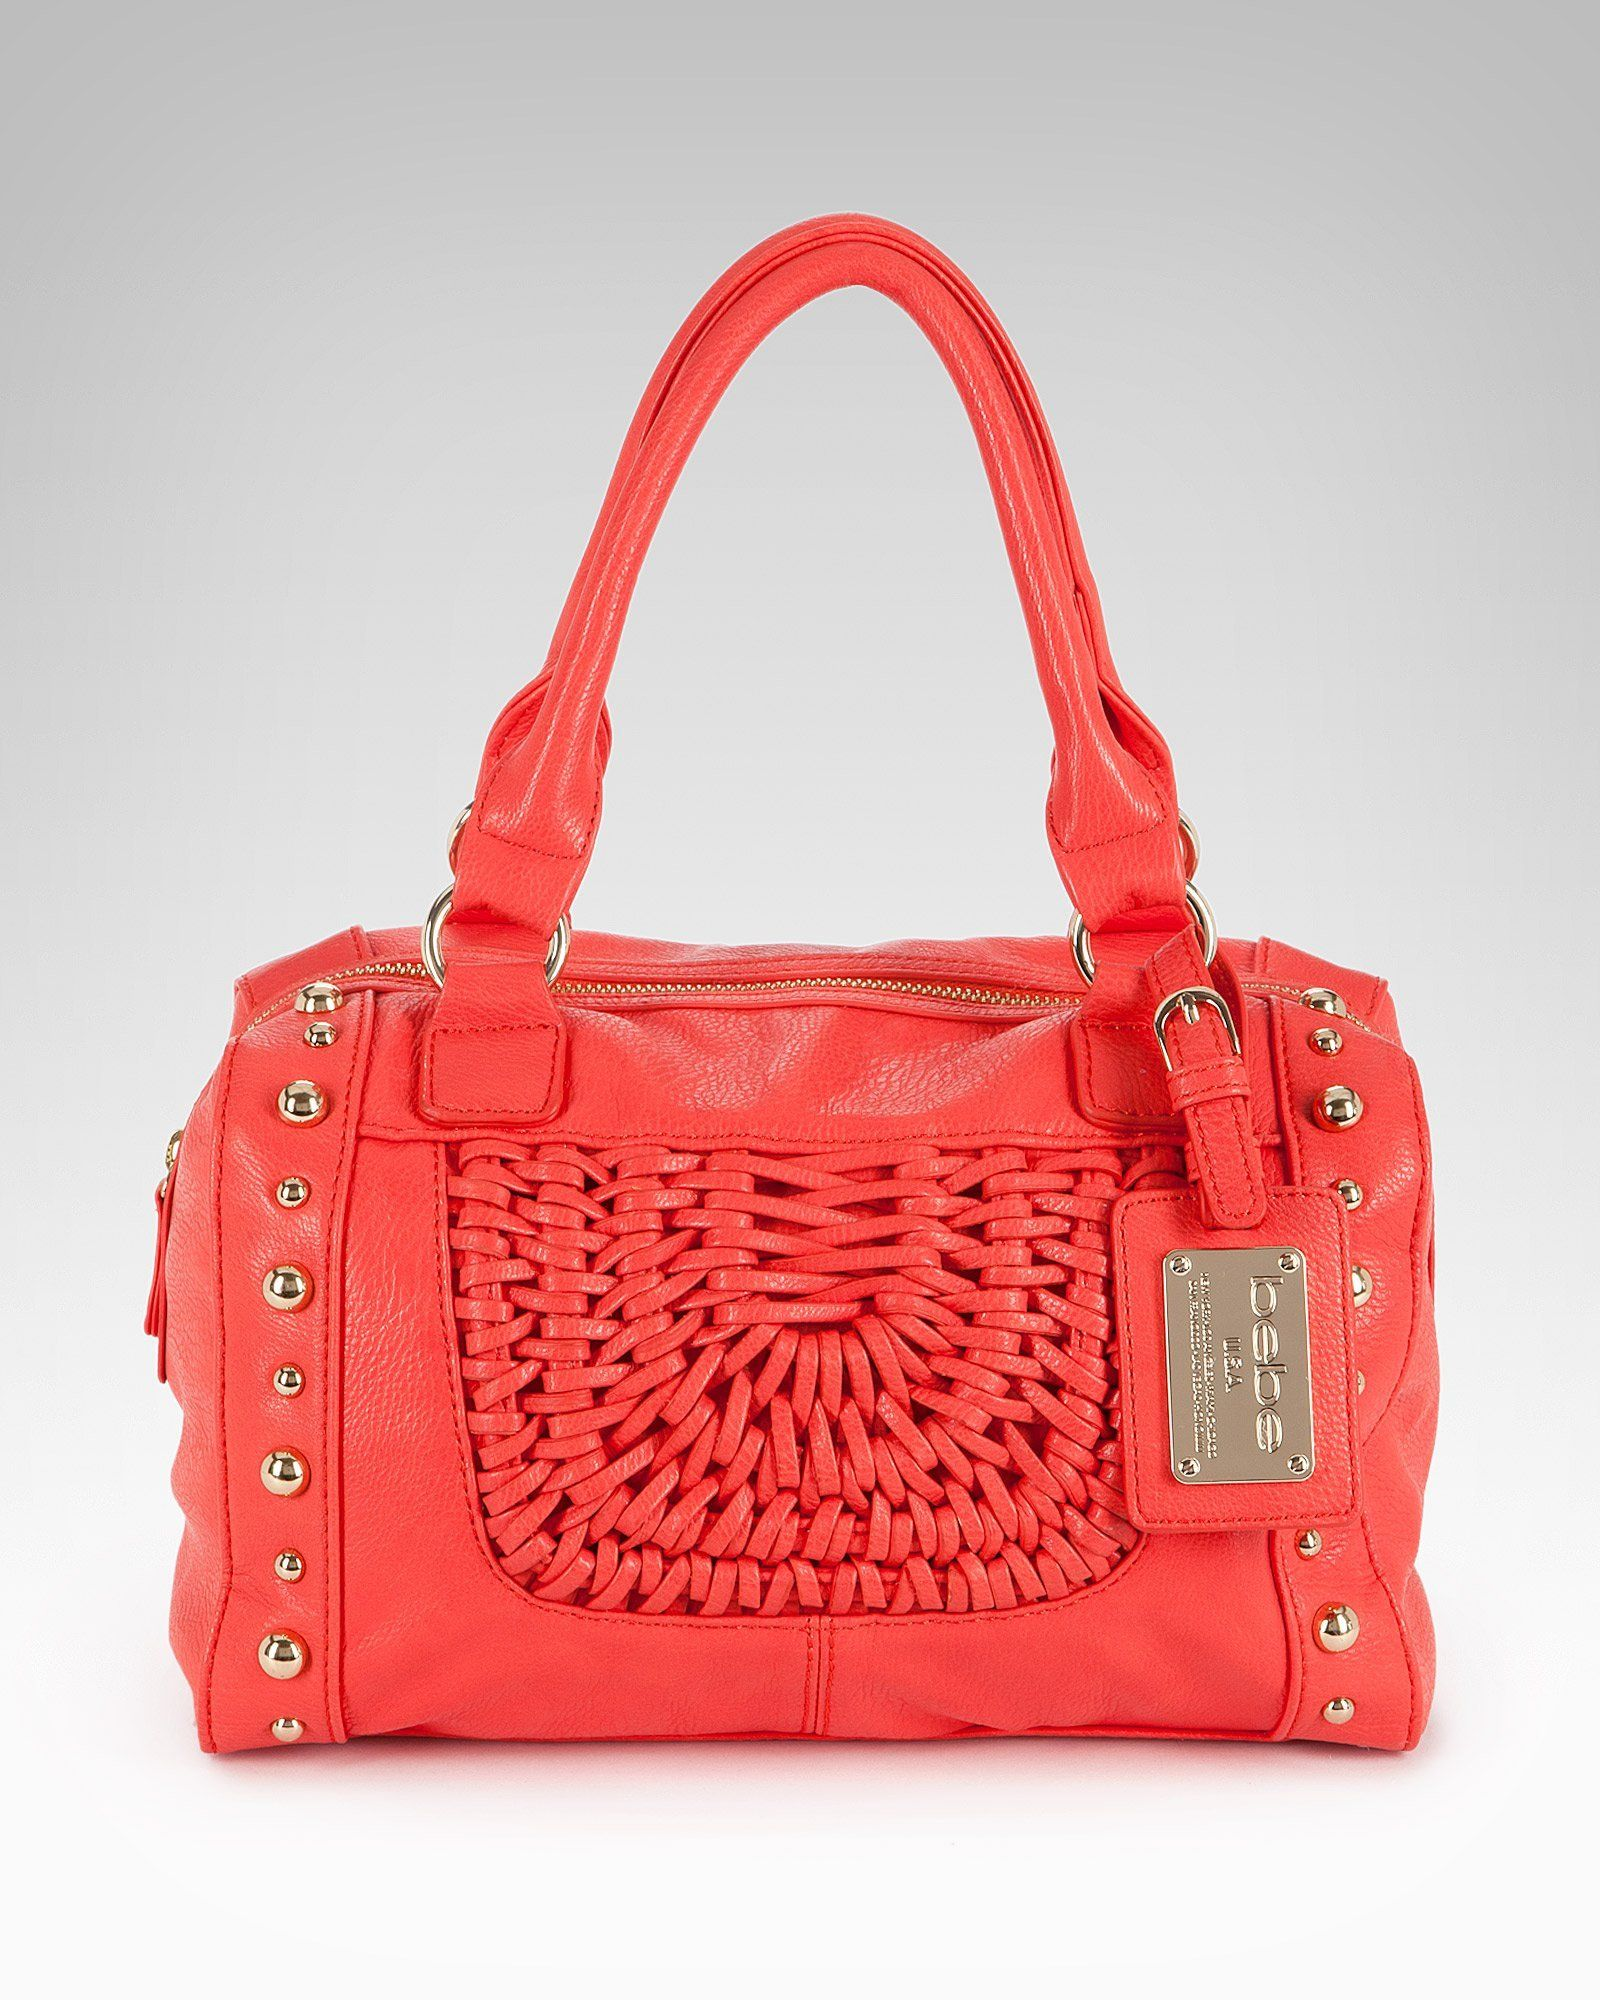 Just got this woven coral handbag from Bebe and I love it!   Fashion ... 7a2cf585a6